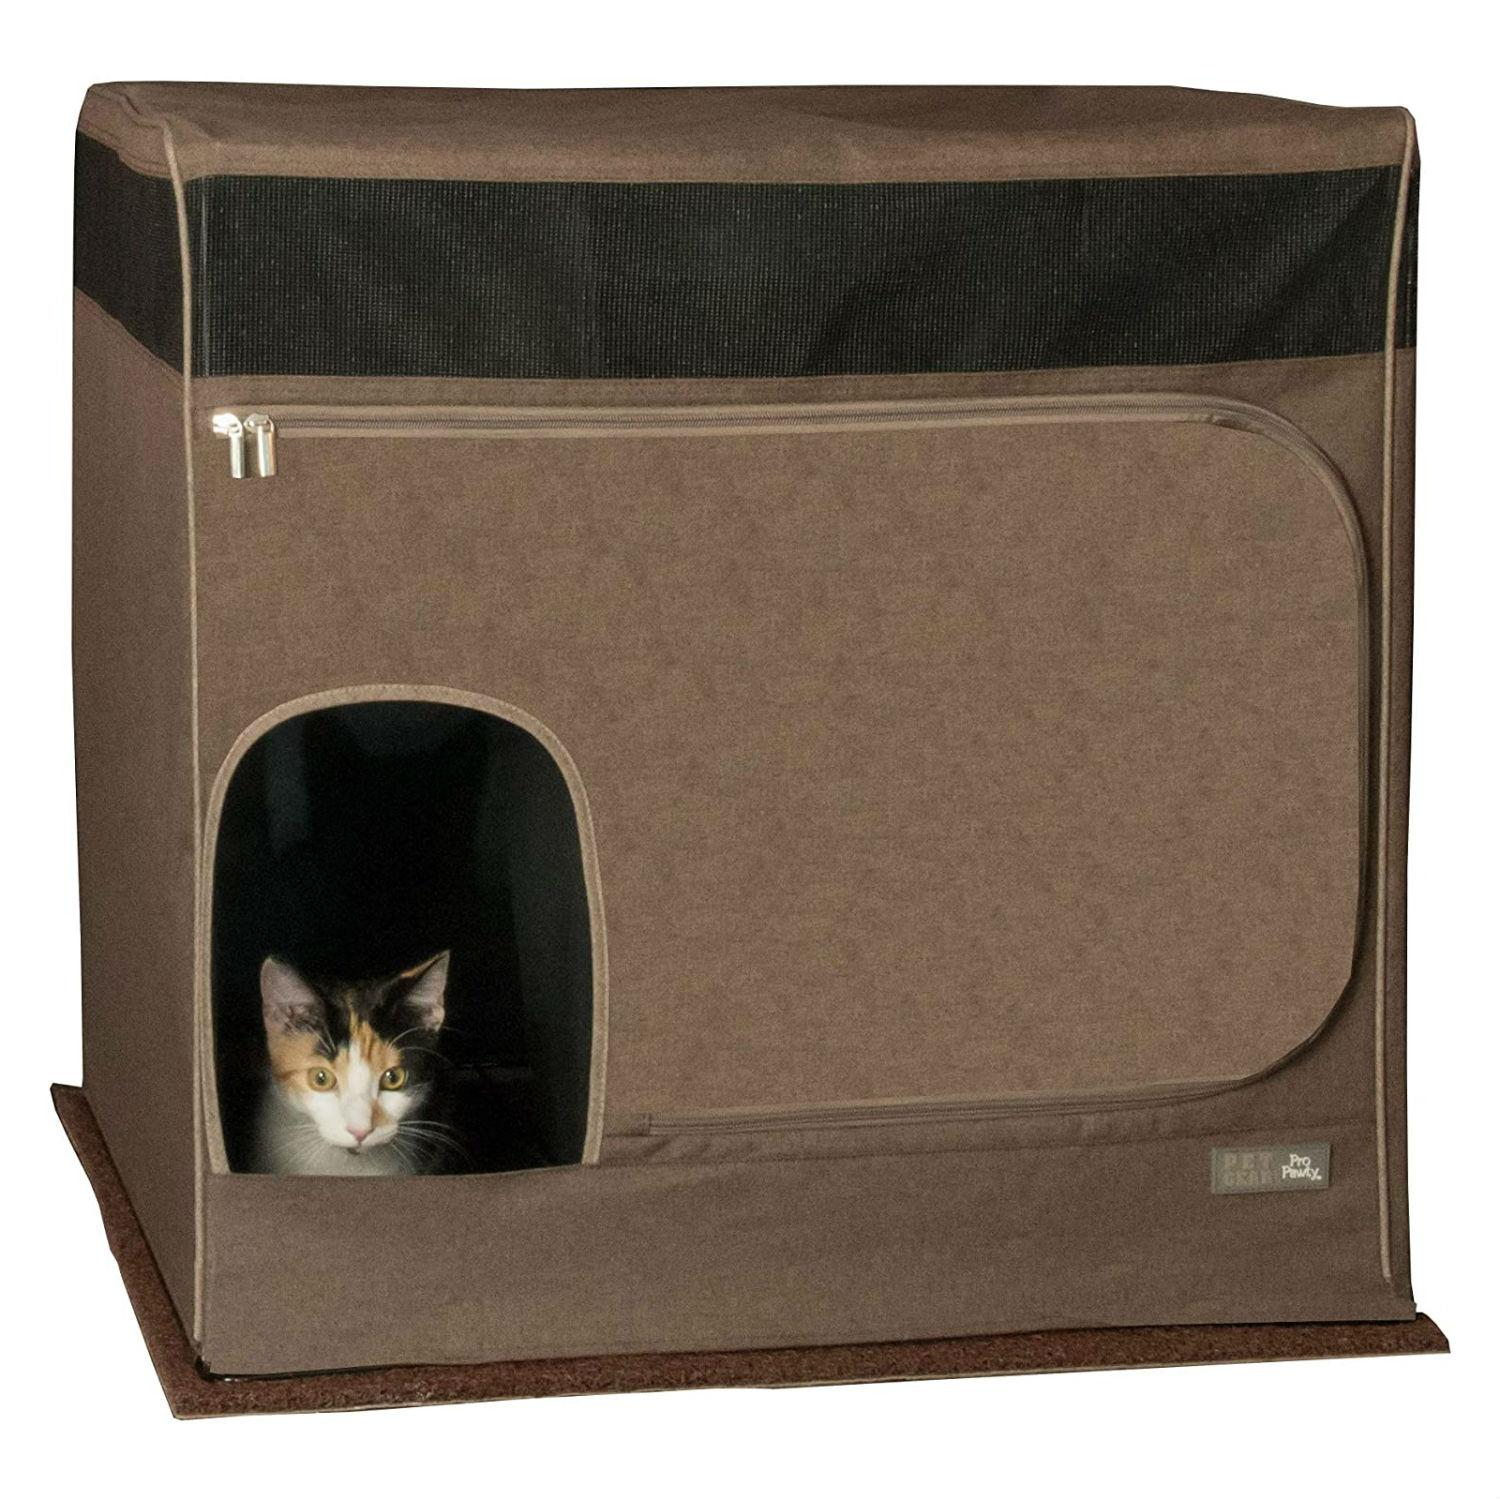 Pet Gear Pro Pawty for Cats - Espresso